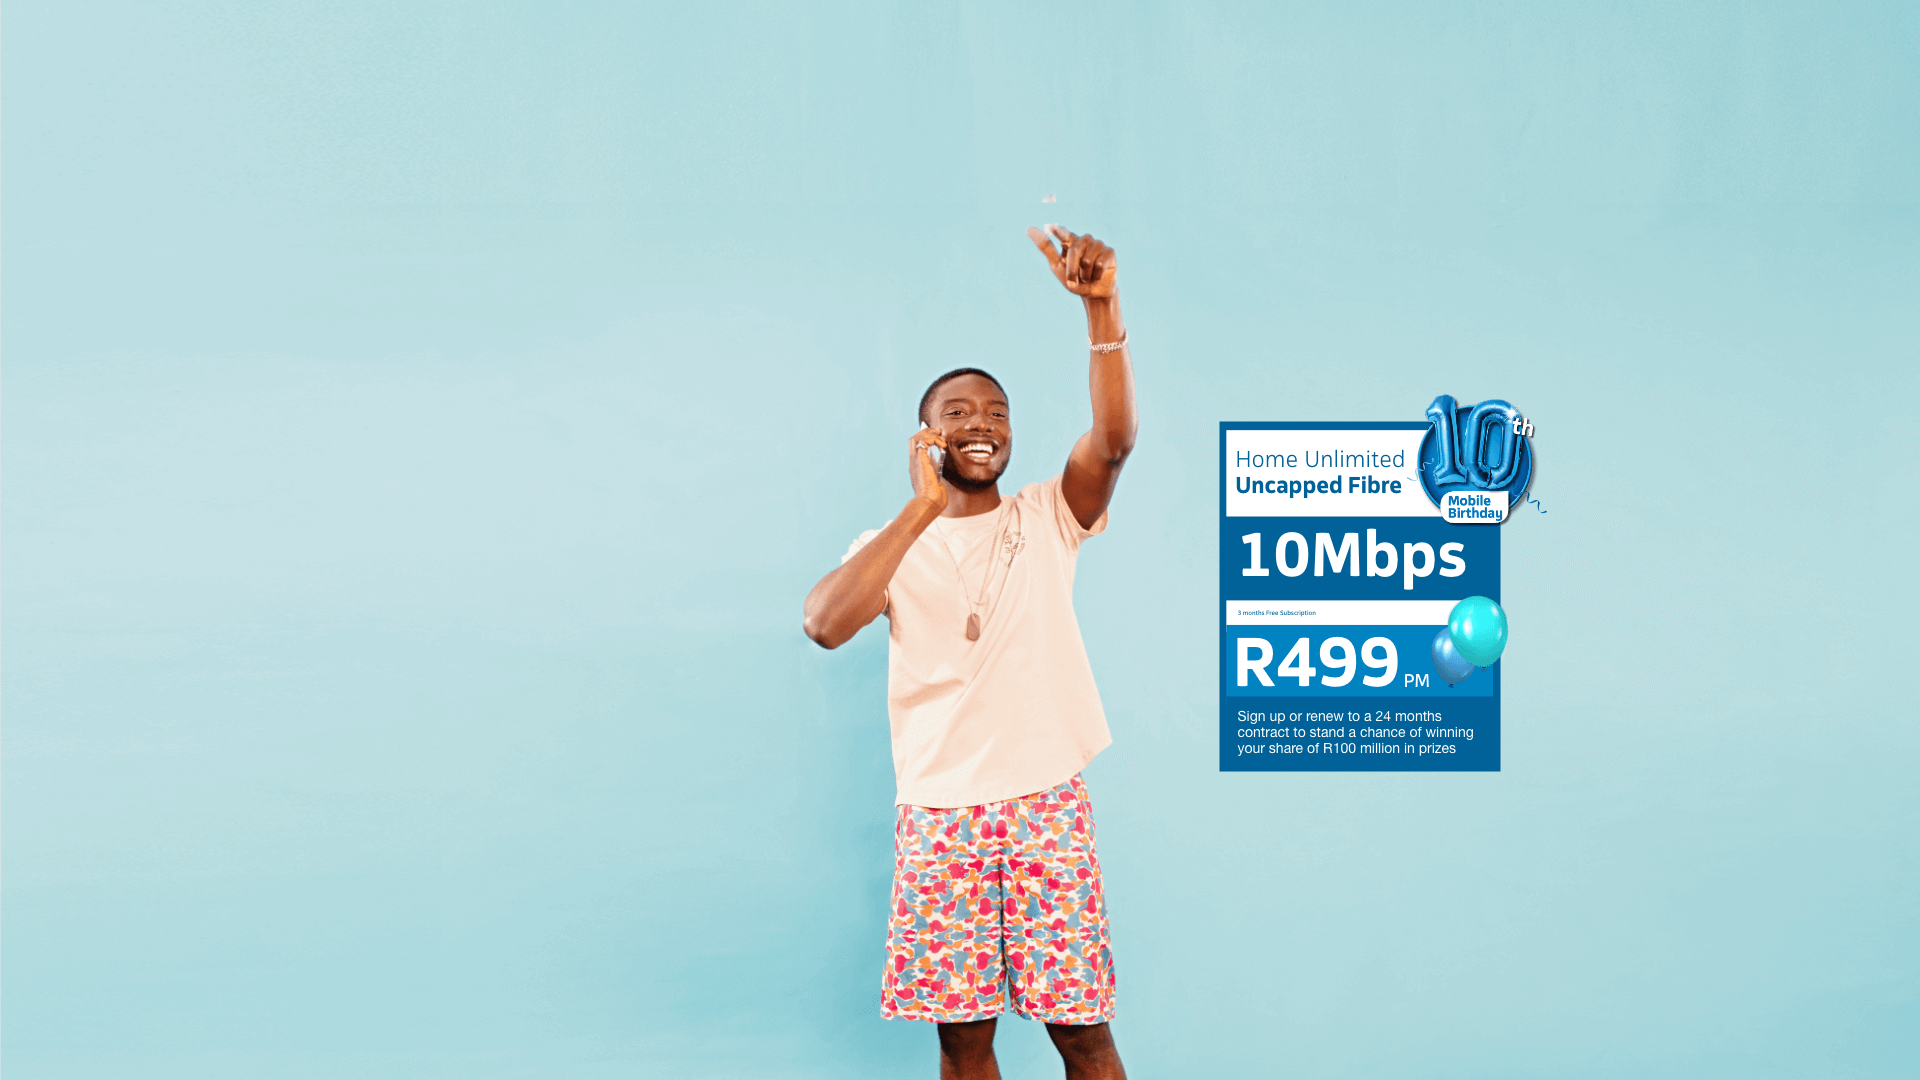 "<div style=""color: #0083C2; font-size: 2rem;"">Make your home the monate place to be with Telkom Home Unlimited Fibre</div>"